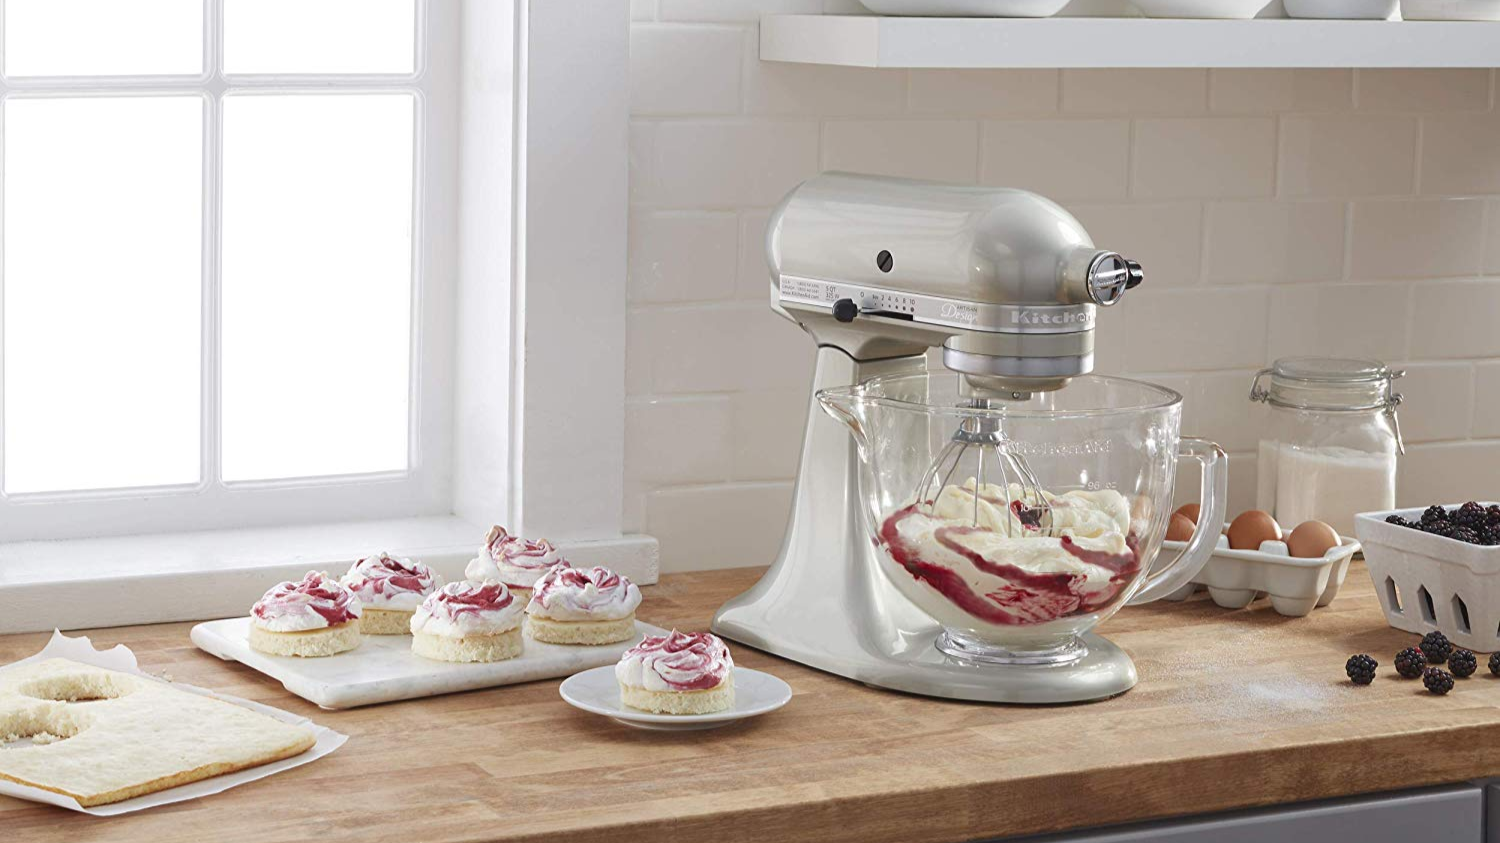 This Black Friday Kitchenaid Deal Will Save You 220 And Is Going Fast